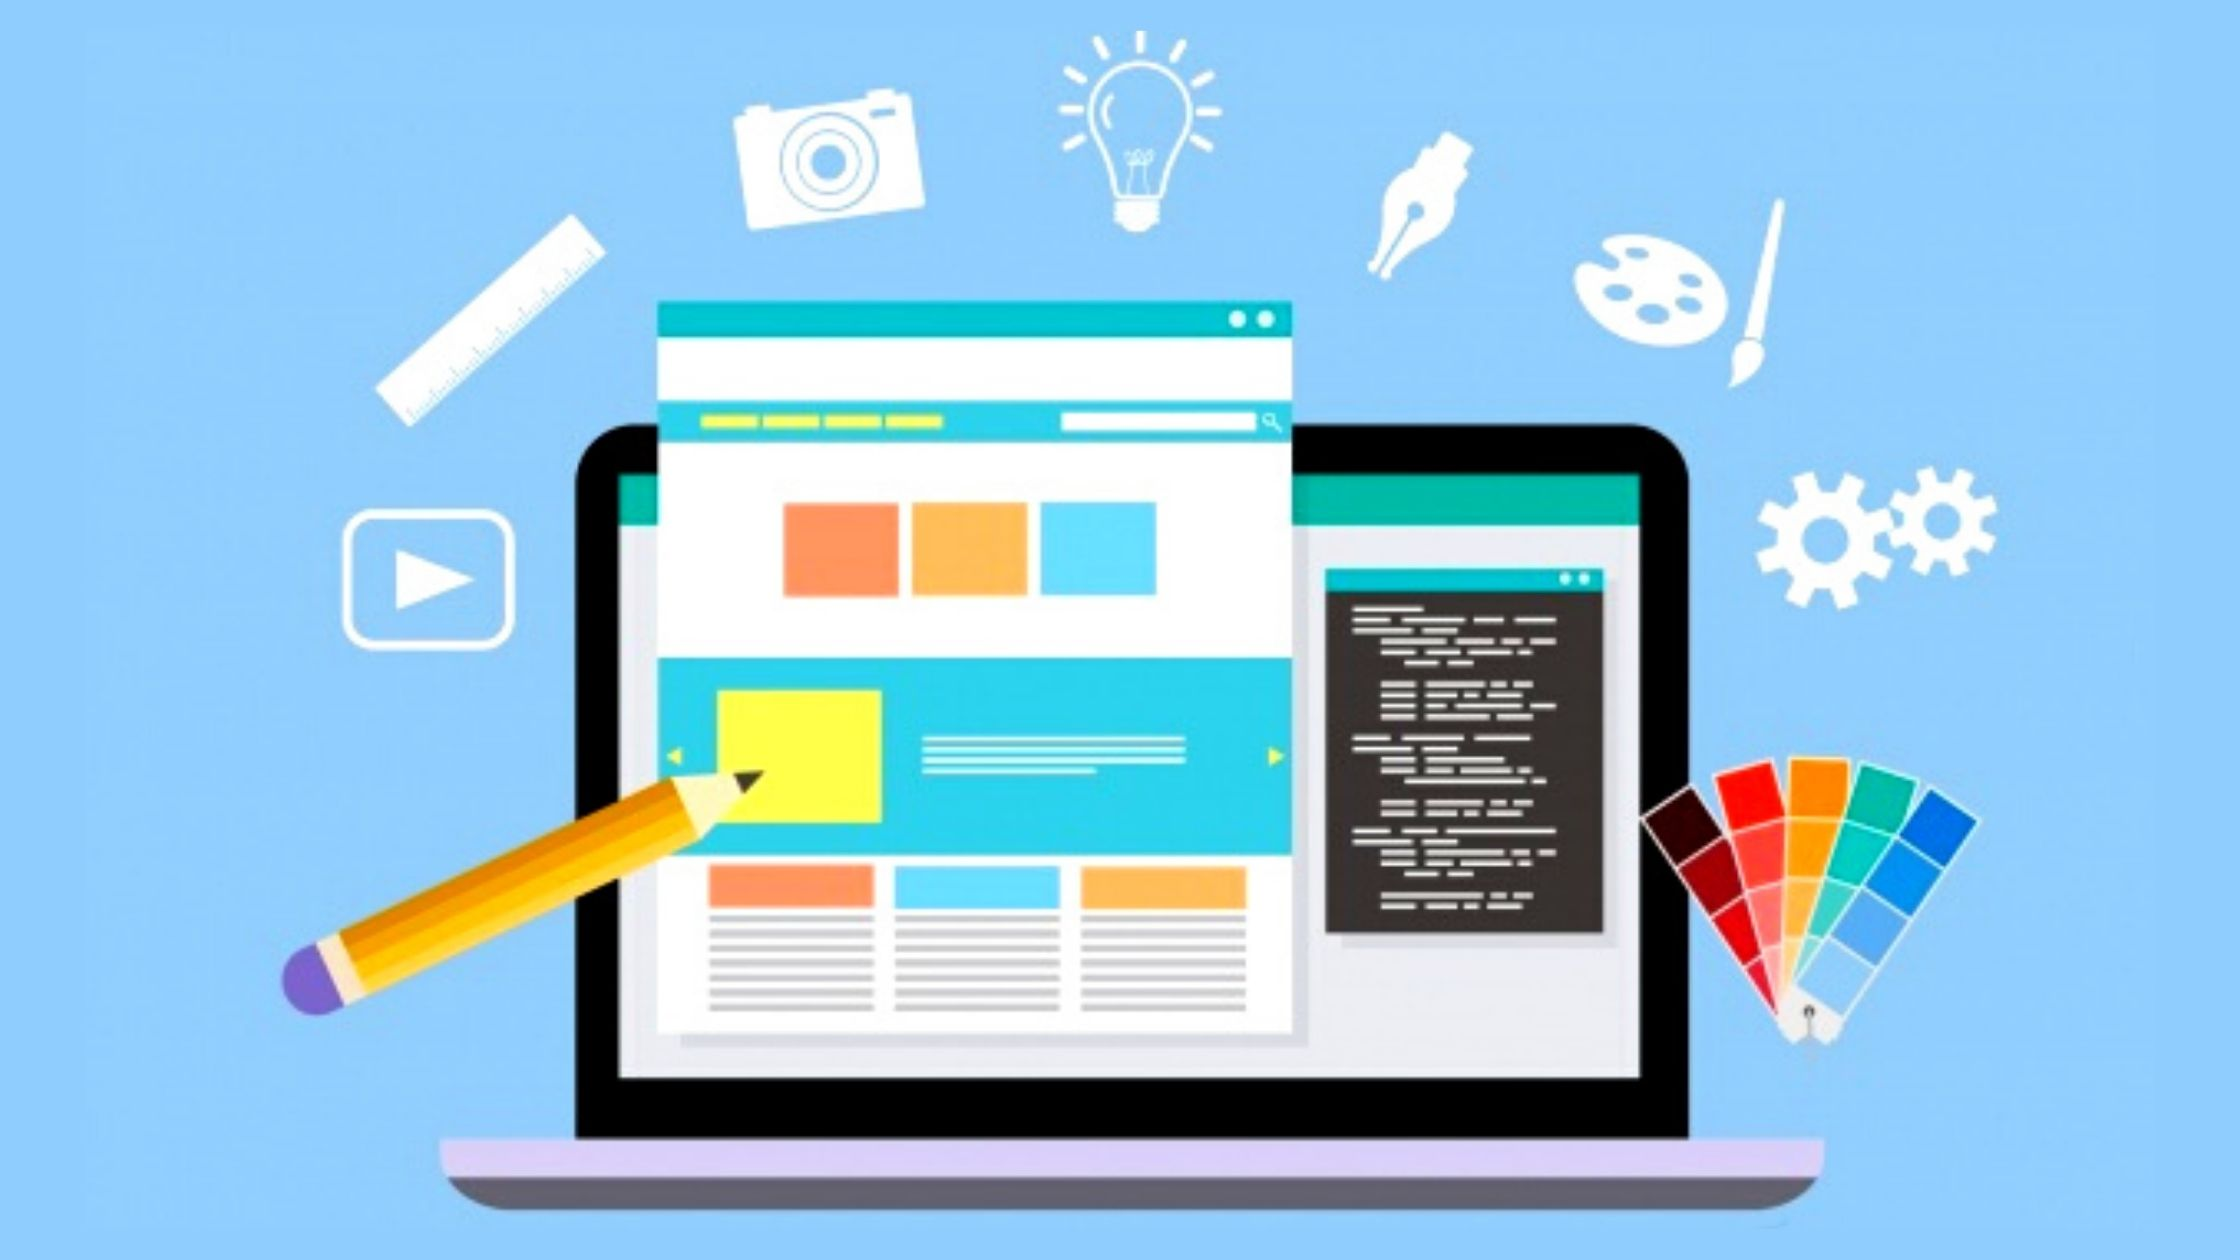 Create your own brand with web design